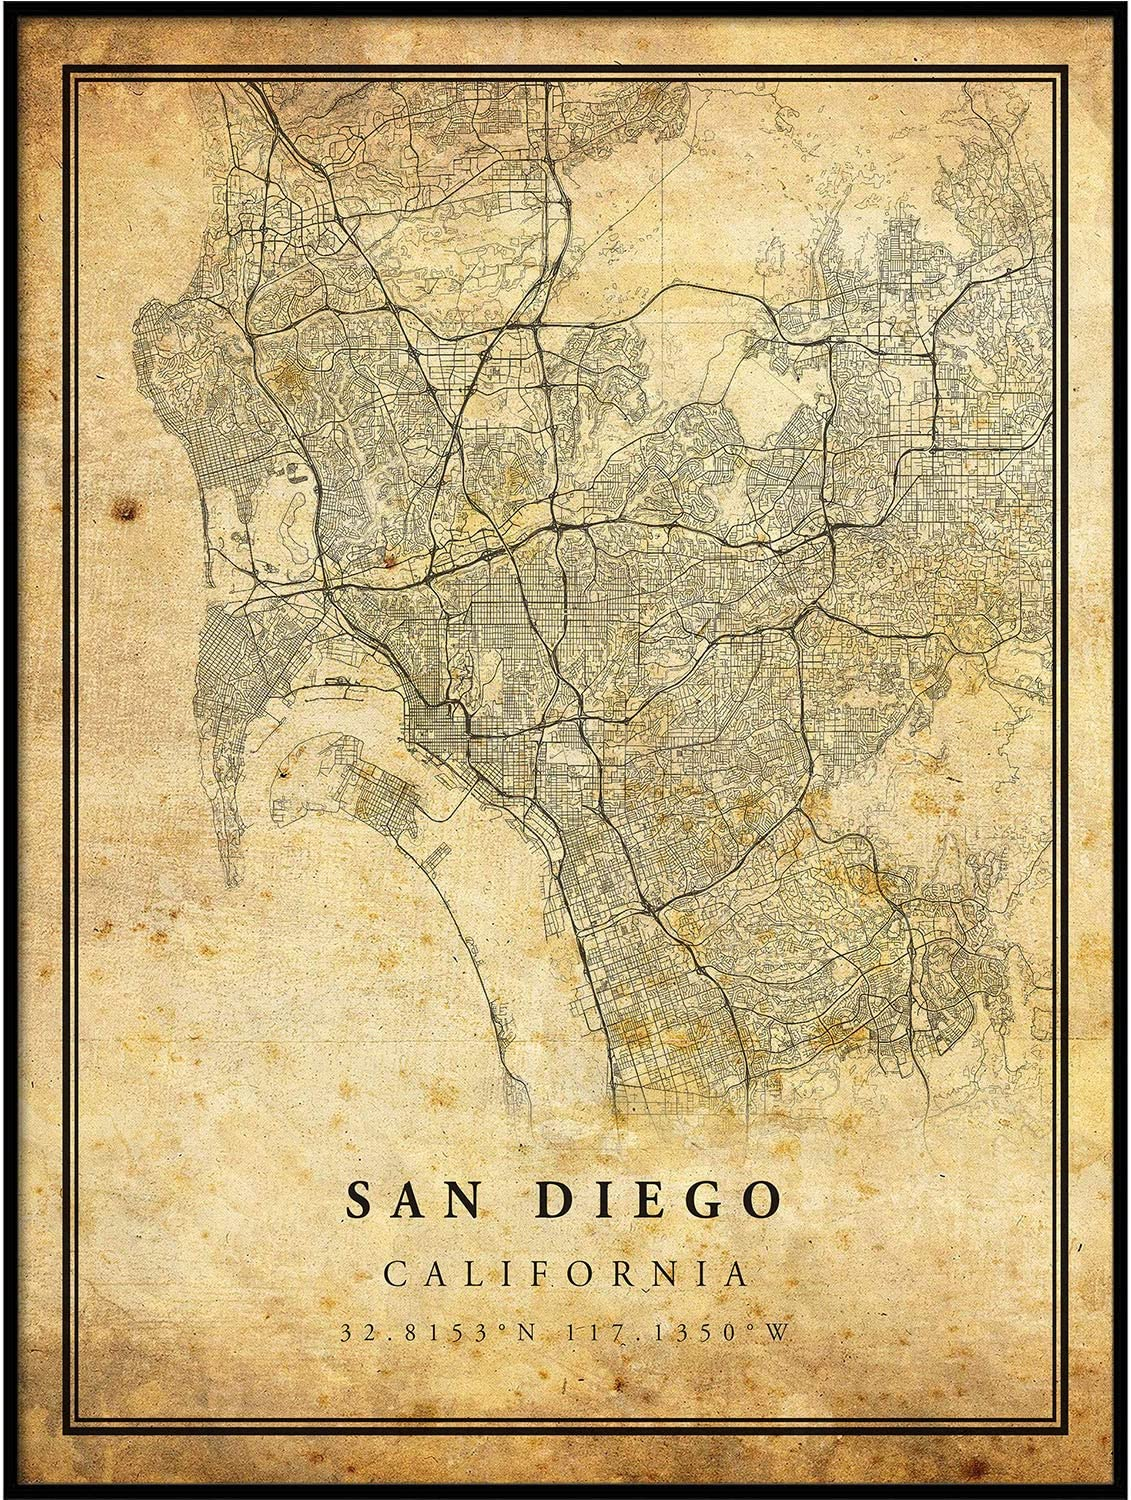 San Diego map Vintage Style Poster Print | Old City Artwork Prints | Antique Style Home Decor | California Wall Art Gift | Vintage map Wedding 8.5x11